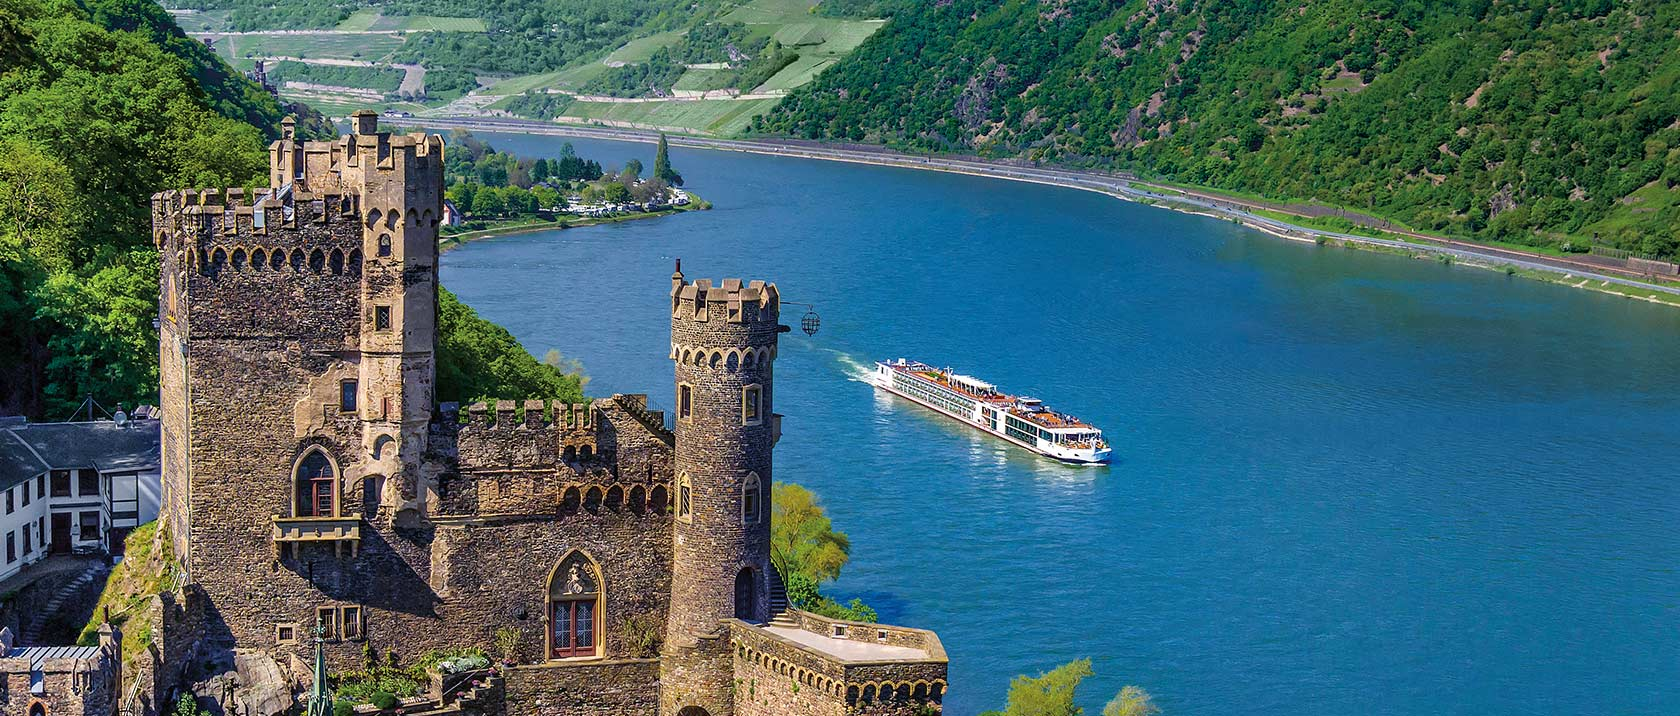 Aerial view of a Viking river ship sailing past Rheinstein Castle in Trechtingshausen, Germany